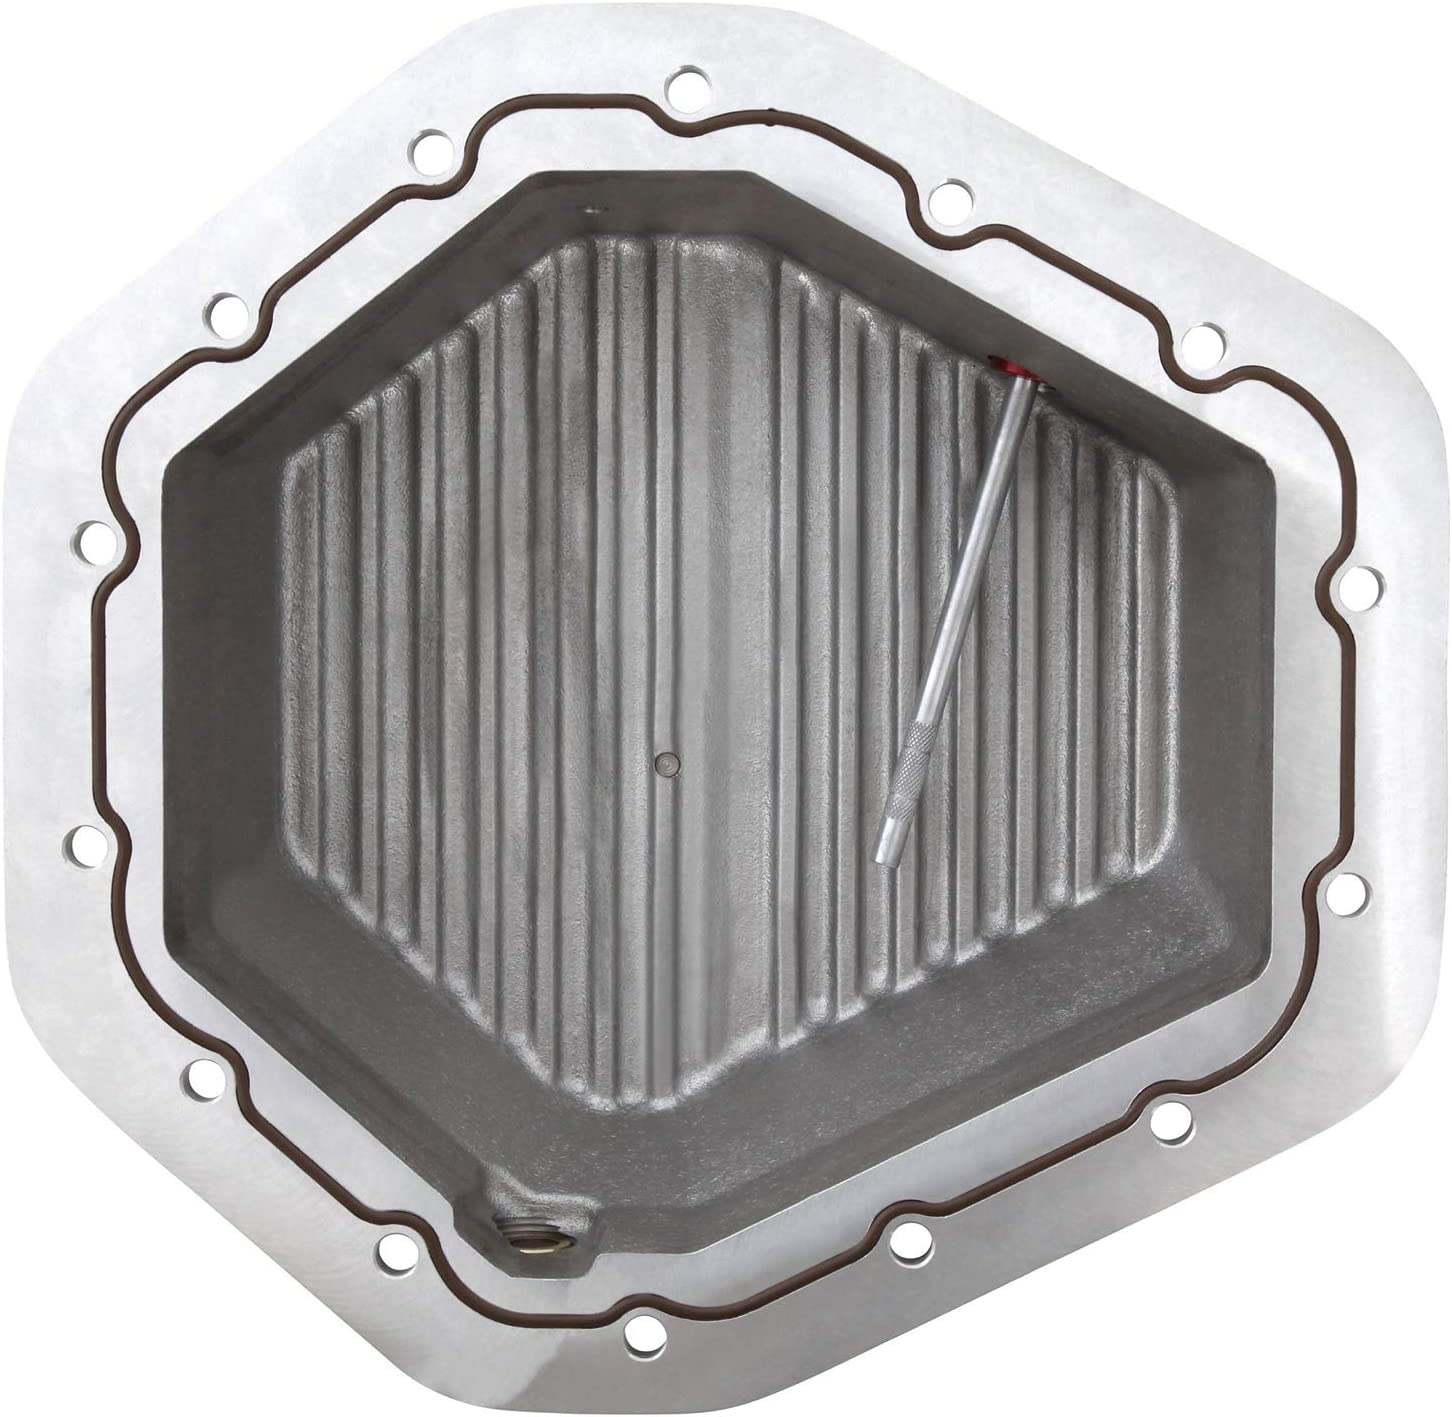 G2 Axle/&Gear 40-2031MB Differential Cover